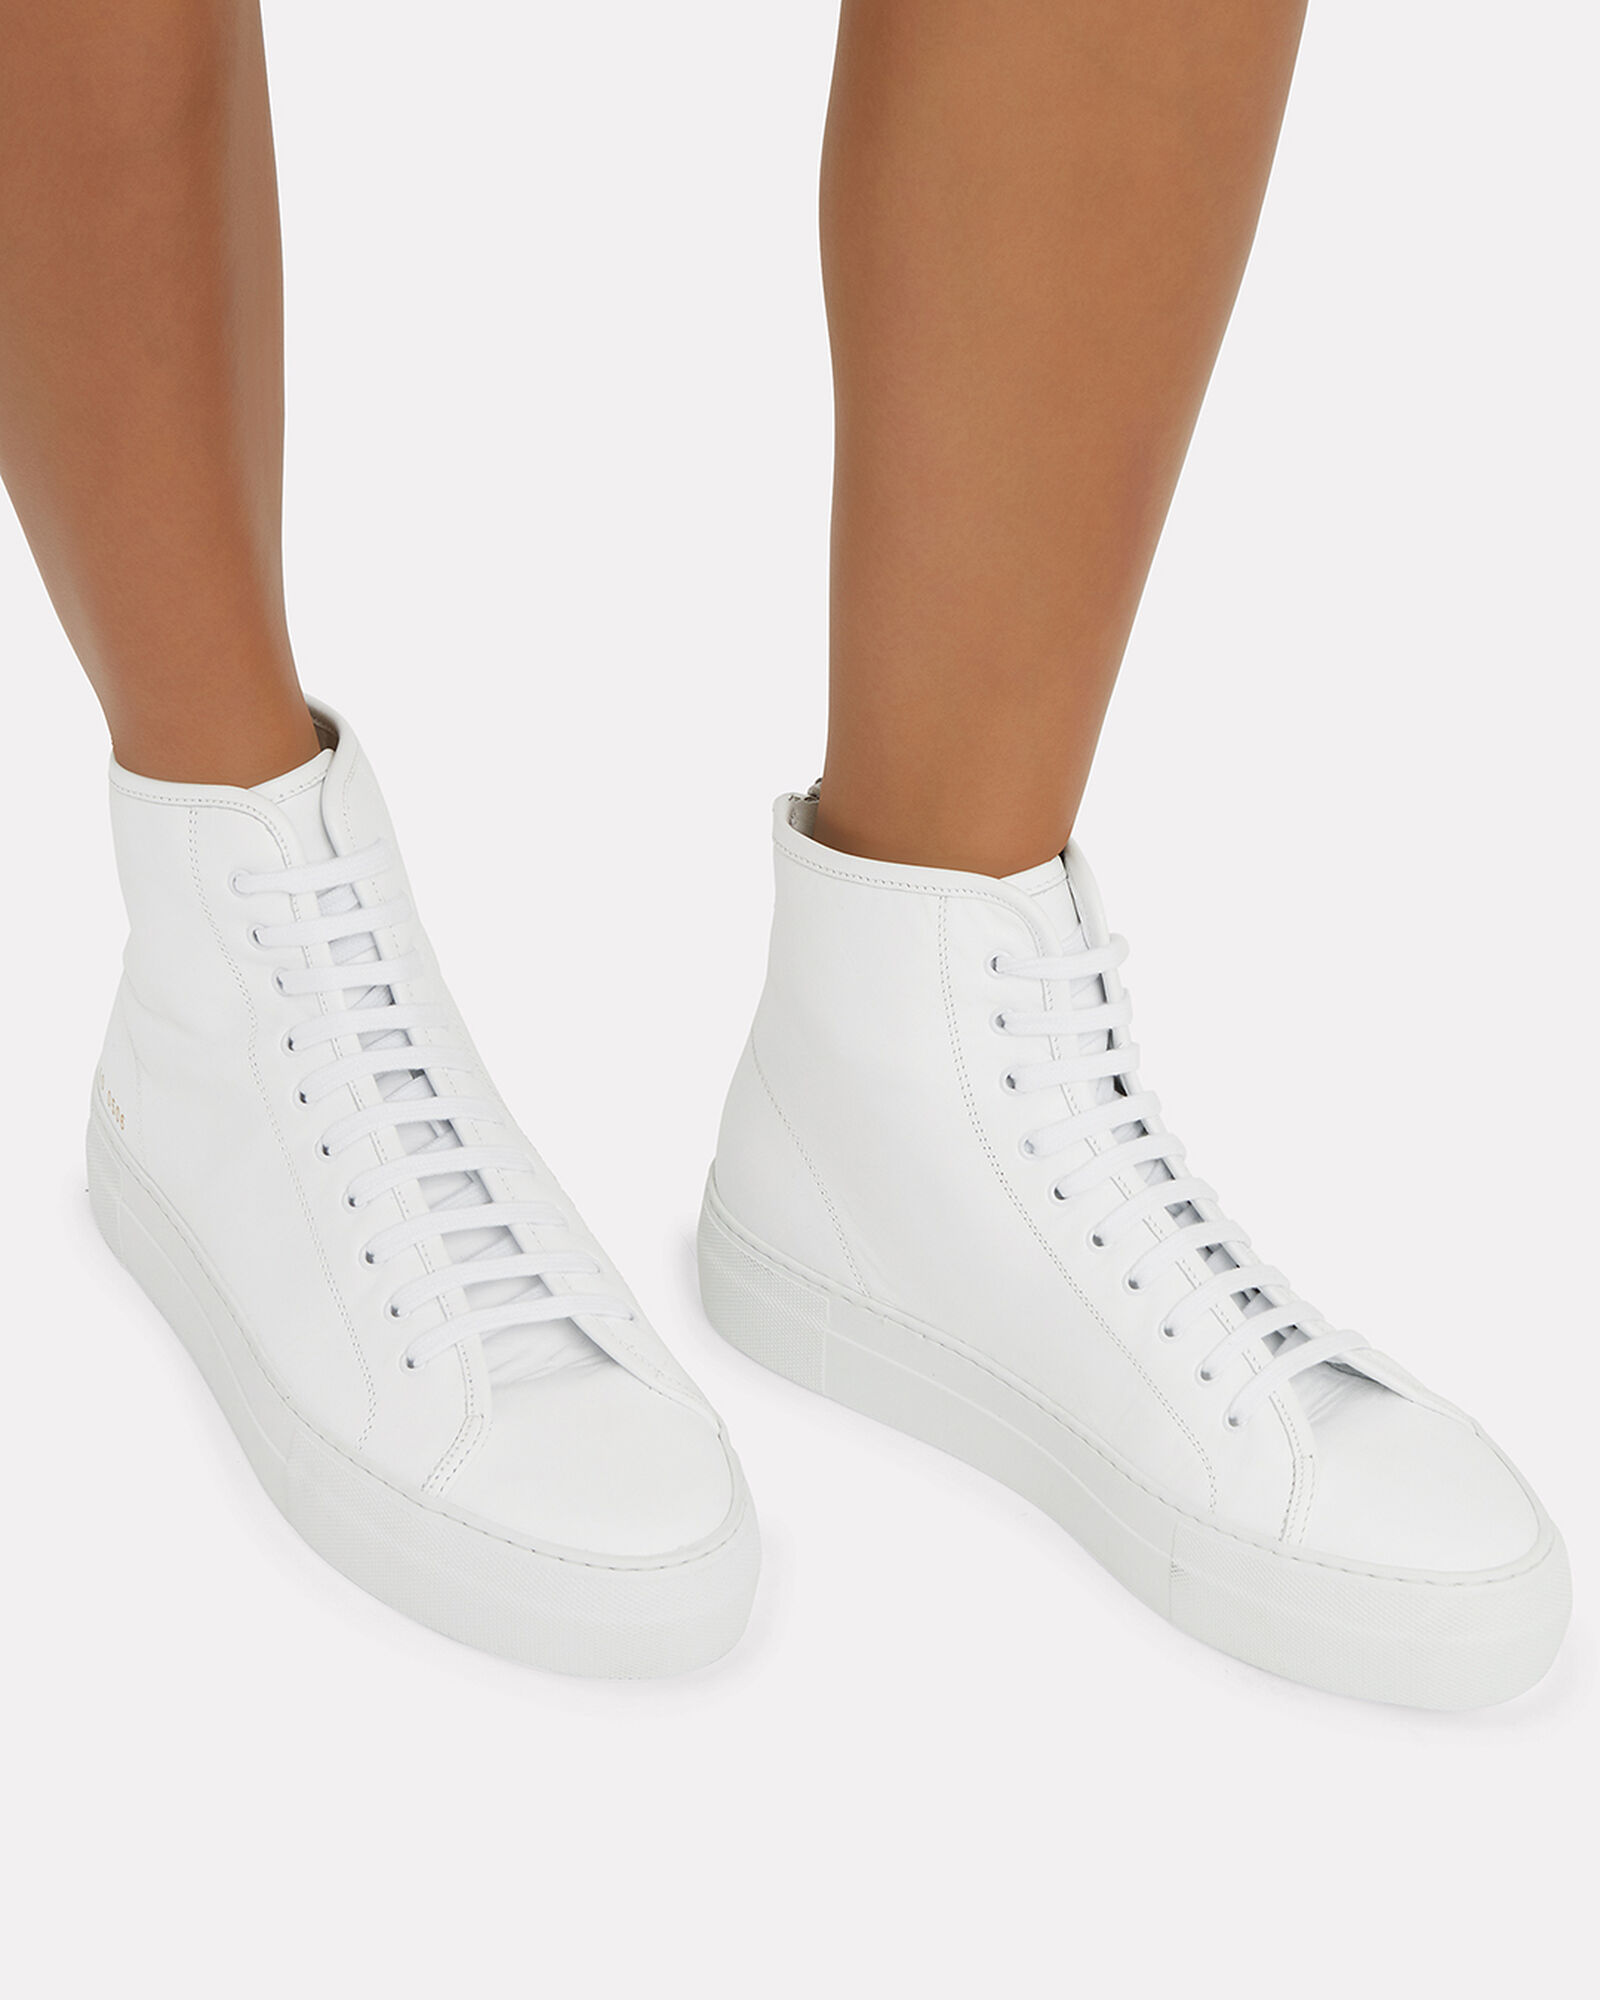 Tournament High-Top White Sneakers, WHITE, hi-res